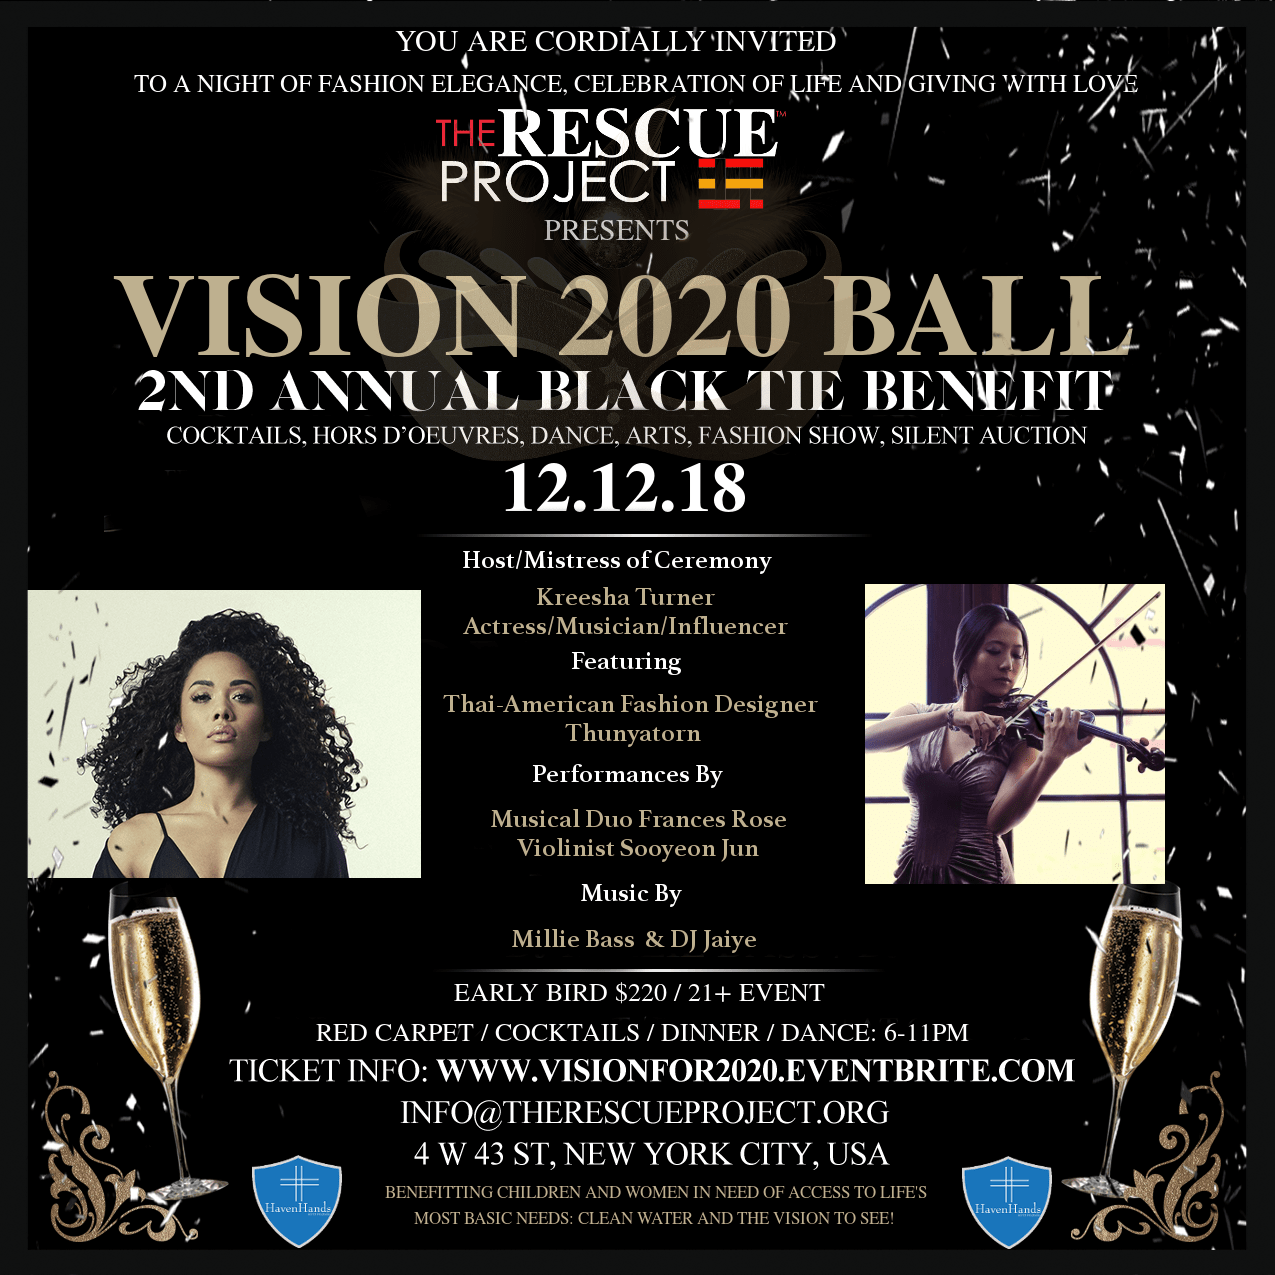 The Rescue Project hosts it's Second Annual Vision 2020 Benefit Ball – A Campaign Raising Awareness while Fighting for Life's' most basic needs;  Access to Clean Drinking Water & Eye Health